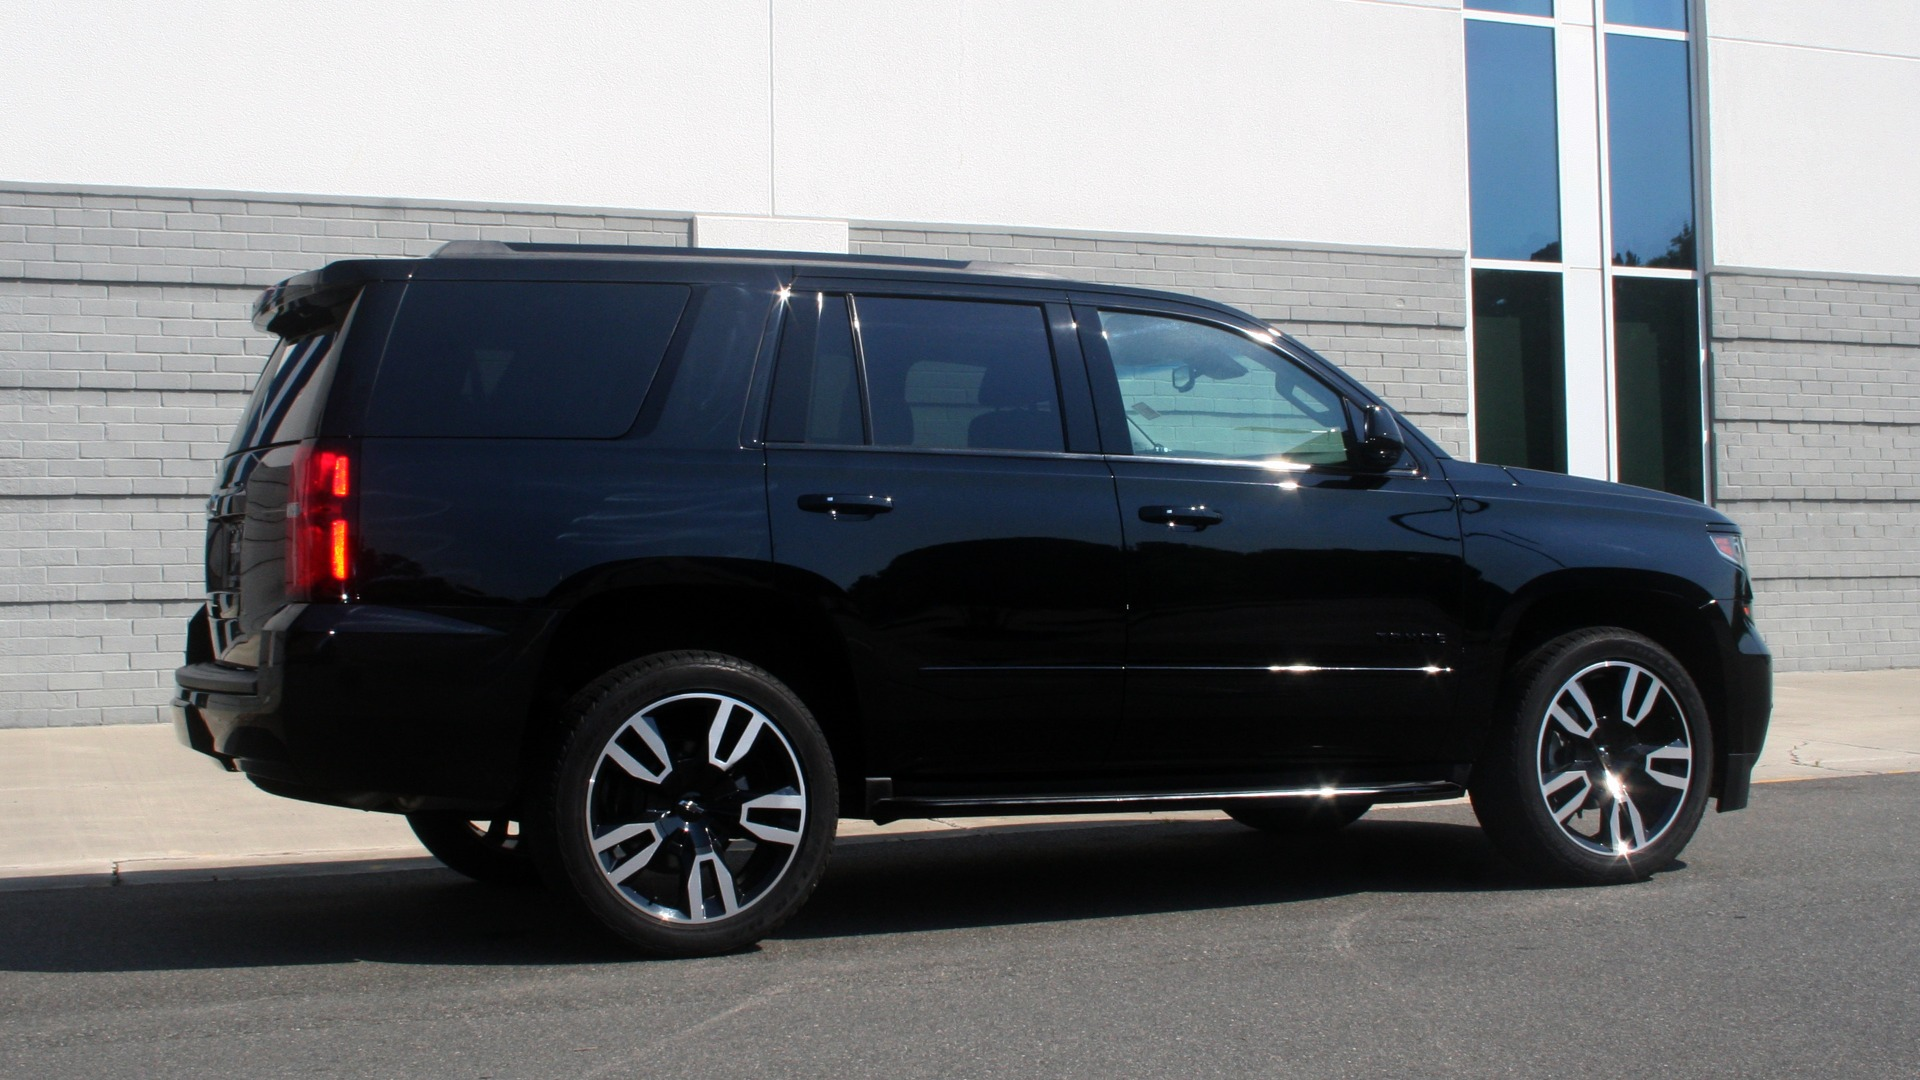 Used 2018 Chevrolet TAHOE PREMIER RST / 4X4 / NAV / BOSE / SUNROOF / 3-ROW / REARVIEW for sale $65,995 at Formula Imports in Charlotte NC 28227 8